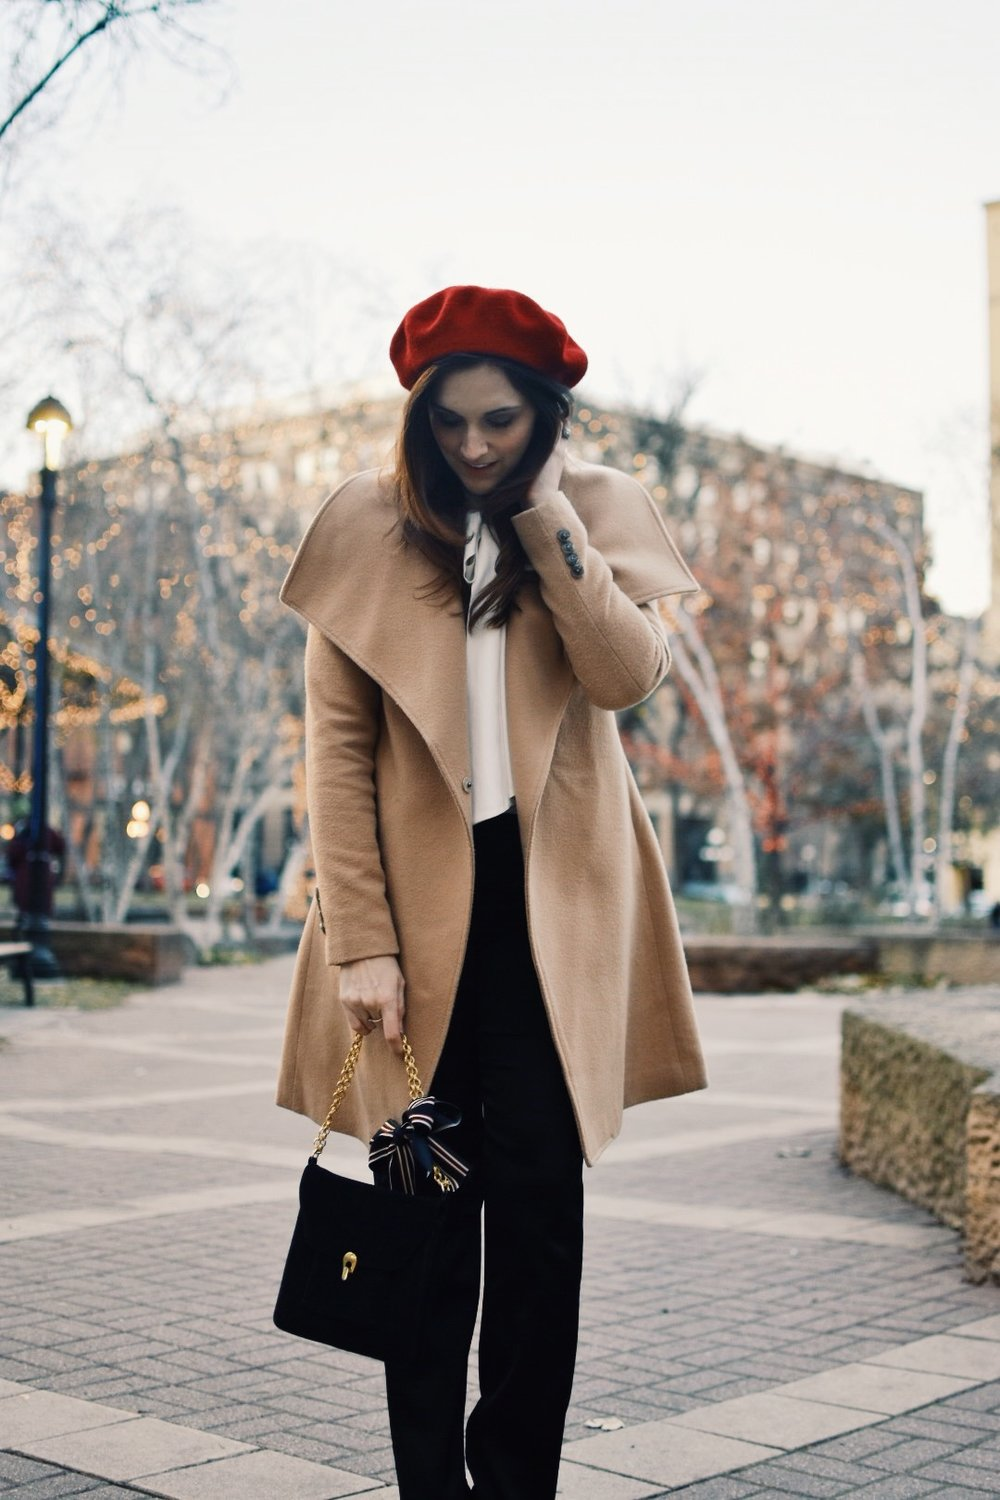 jess burke well layered personal wardrobe stylist minneapolis easy ways to look effortlessly chic personal shopper.JPG